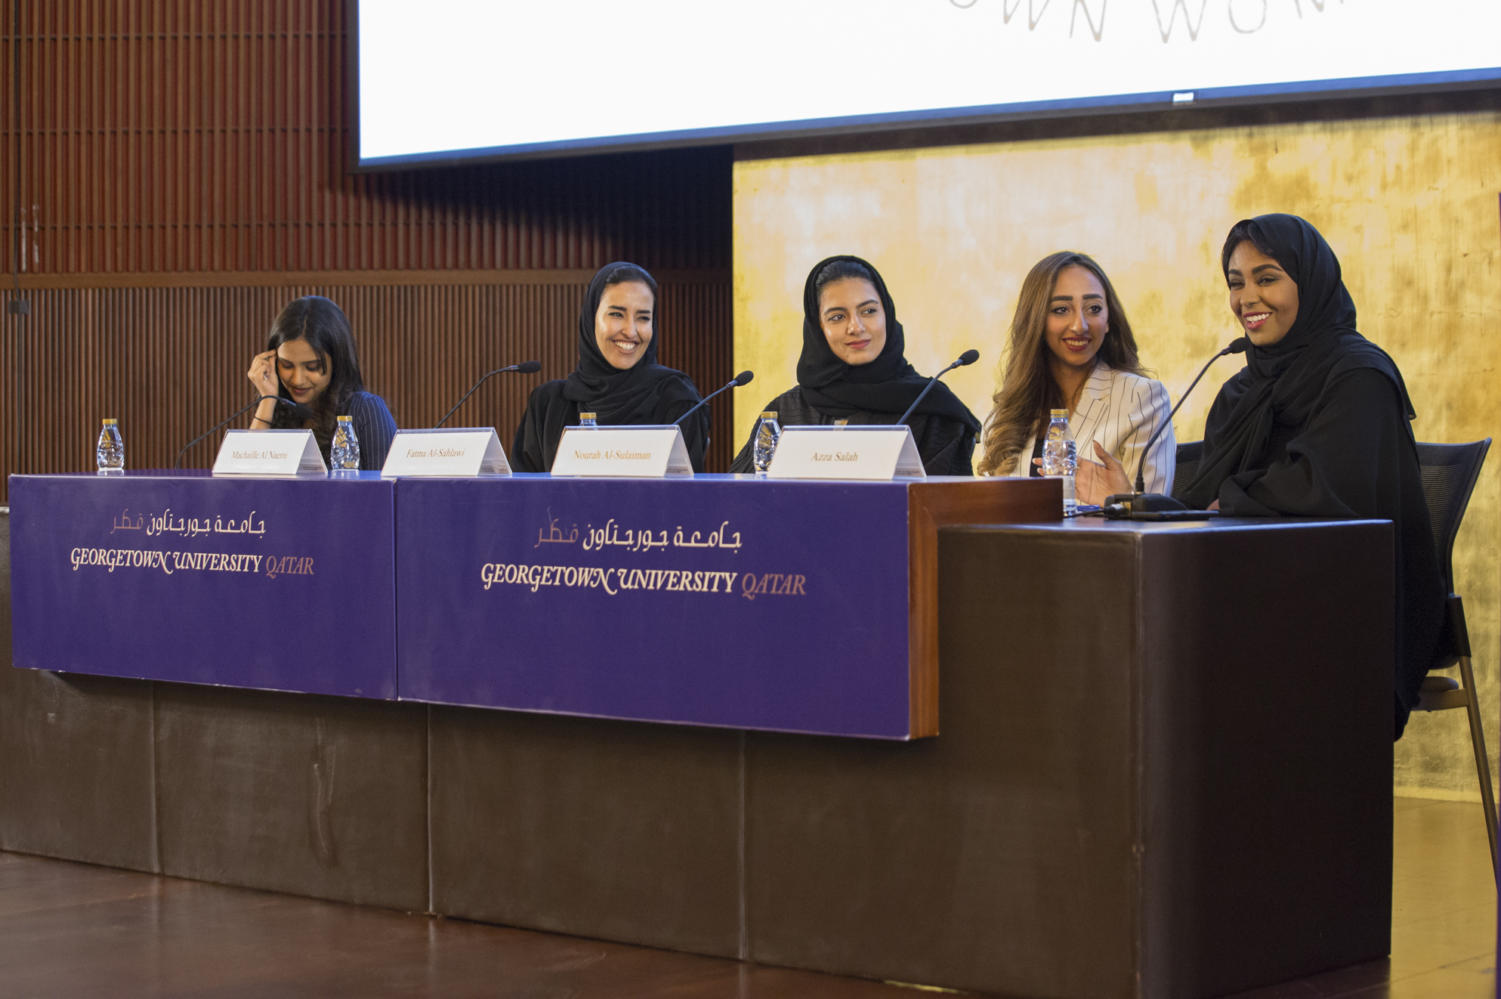 (From left to right) Ritica Ramesh, event organizer, Machaille Al-Naimi, Qatari lawyer, Fatima Al-Sahlawi, Qatari architect, Nourah Al-Sulaiman, outreach manager of  Insaniyat from Kuwait, and Azza Salah, CEO of Sky Climbers. Photo provided by GU-Q.